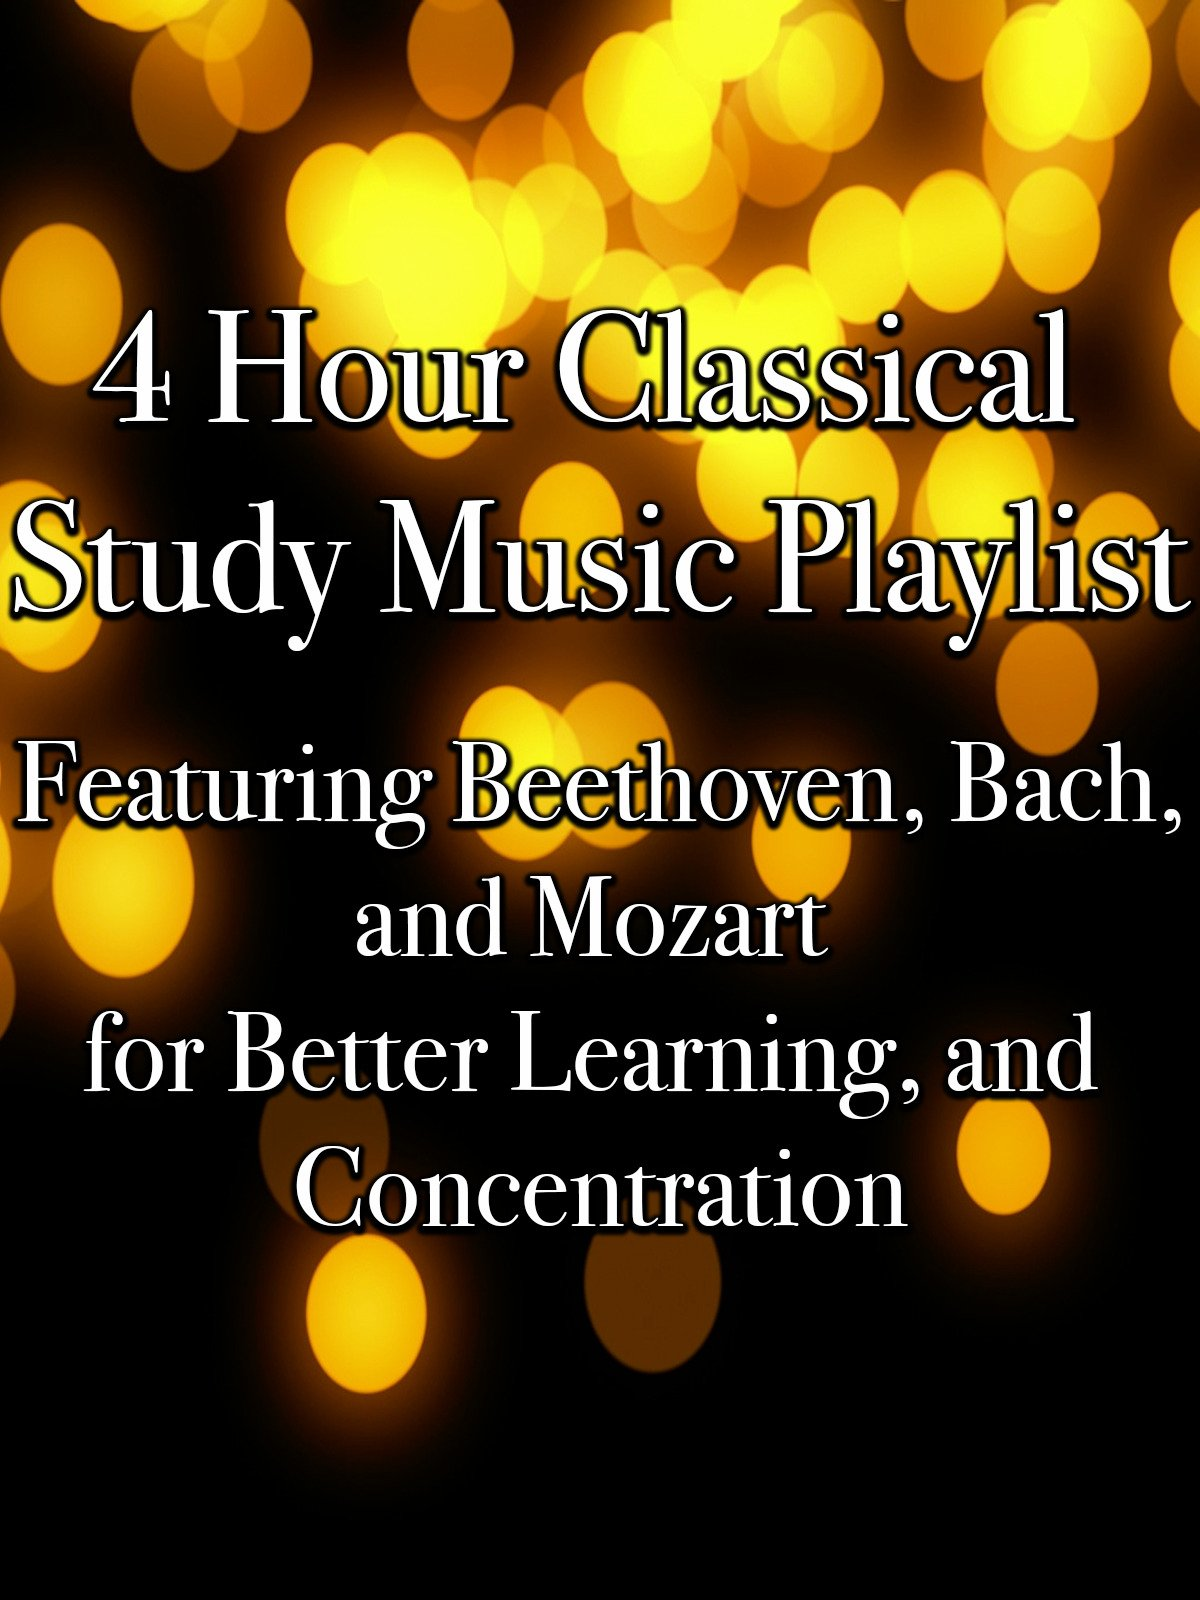 4 Hour Classical Study Music Playlist Featuring Beethoven, Bach, and Mozart for Better Learning, and Concentration